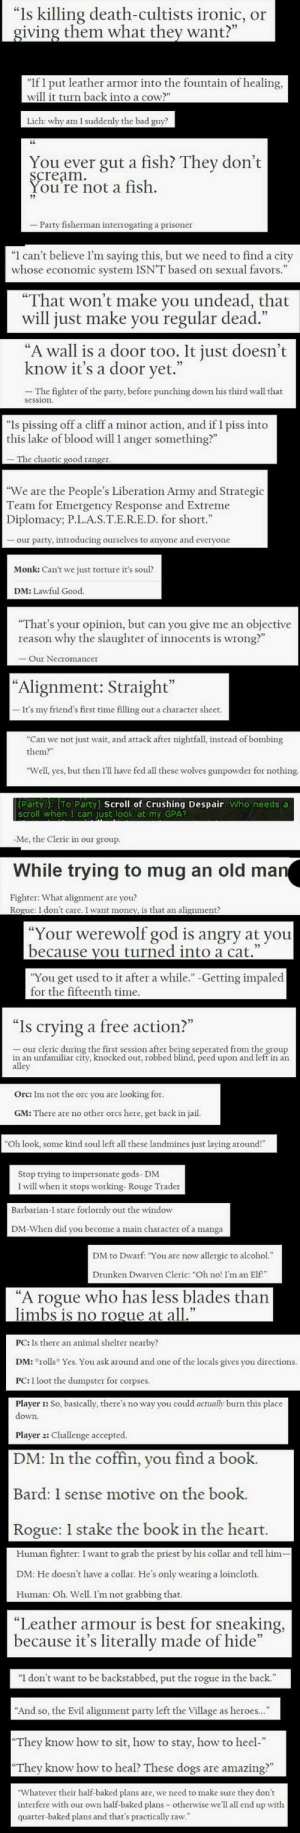 "Bad, Baked, and Crying: ""Is killing death-cultists ironic, or  giving them what they want?""  ""If I put leather armor into the fountain of healing,  will it turn back into a cow?""  Lich: why am 1 suddenly the bad guy?  You ever gut a fish? They don't  scream  You're not a fish.  Party fisherman interrogating a prisoner  ""I can't believe I'm saying this, but we need to find a city  whose economic system 1SN'T based on sexual favors.""  ""That won't make you undead, that  will just make you regular dead.  ""A wall is a door too. It just doesn't  know it's a door yet.""  -The fighter of the party, before punching down his third wall that  session.  ""Is pissing off a cliff a minor action, and if I piss into  this lake of blood will 1 anger something?""  -The chaotic good ranger.  ""We are the People's Liberation Army and Strategic  Team for Emergency Response and Extreme  Diplomacy; P.L.A.S.T.E.R.E.D. for short.""  our party, introducing ourselves to anyone and everyone  Monk: Can't we just torture it's soul?  DM: Lawful Good.  objective  ""That's your opinion, but can you give me an  why the slaughter of innocents is wrong?""  reason  -Our Necromancer  ""Alignment: Straight""  It's my friend's first time filling out a character sheet.  ""Can we not just wait, and attack after nightfall, instead of bombing  them?""  ""Well, yes, but then I'll have fed all these wolves gunpowder for nothing.  Party:): [To Party] Scroll of Crushing Despair. Who needs a  scroll when I can just look at my GPA?  -Me, the Cleric in our group.  While trying to mug an old man  Fighter: What alignment are you?  Rogue: 1 don't care. I want money, is that an alignment?  ""Your werewolf god is angry at you  because you turned into a cat.""  ""You get used to it after a while.""-Getting impaled  for the fifteenth time  ""Is crying  a free action?""  our cleric during the first session after being seperated from the group  in an unfamiliar city, knocked out, robbed blind, peed upon and left in an  alley  Orc: Im not the orc you are looking for.  GM: There are no other orcs here, get back in jail.  ""Oh look, some kind soul left all these landmines just laying around!""  Stop trying to impersonate gods- DM  1 will when it stops working- Rouge Trader  Barbarian-I stare forlornly out the window  DM-When did you become a main character of a manga  DM to Dwarf: ""You are now allergic to alcohol.""  Drunken Dwarven Cleric: ""Oh no! I'm an Elf!""  A rogue who has less blades than  limbs is no rogue at all.""  PC: Is there an animal shelter nearby?  DM: rolls Yes. You ask around and one of the locals gives you directions.  PC: 1 loot the dumpster for corpses  Player : So, basically, there's no way you could actually burn this place  down.  Player 2: Challenge accepted.  DM: In the coffin, you find a book.  Bard: 1 sense motive on the book.  Rogue: 1 stake the book in the heart  Human fighter: 1 want to grab the priest by his collar and tell him-  DM: He doesn't have a collar. He's only wearing a loincloth.  Human: Oh. Well. I'm not grabbing that.  ""Leather armour is best for sneaking,  because it's literally made of hide""  ""I don't want to be backstabbed, put the rogue in the back.""  ""And so, the Evil alignment party left the Village as heroes...  ""They know how to sit, how to stay, how to heel-""  ""They know how to heal? These dogs  amazing?""  are  ""Whatever their half-baked plans are, we need to make sure they don't  interfere with our own half-baked plans otherwise we'll all end up with  quarter-baked plans and that's practically raw."" Bite-size DnD Dump - Imgur"